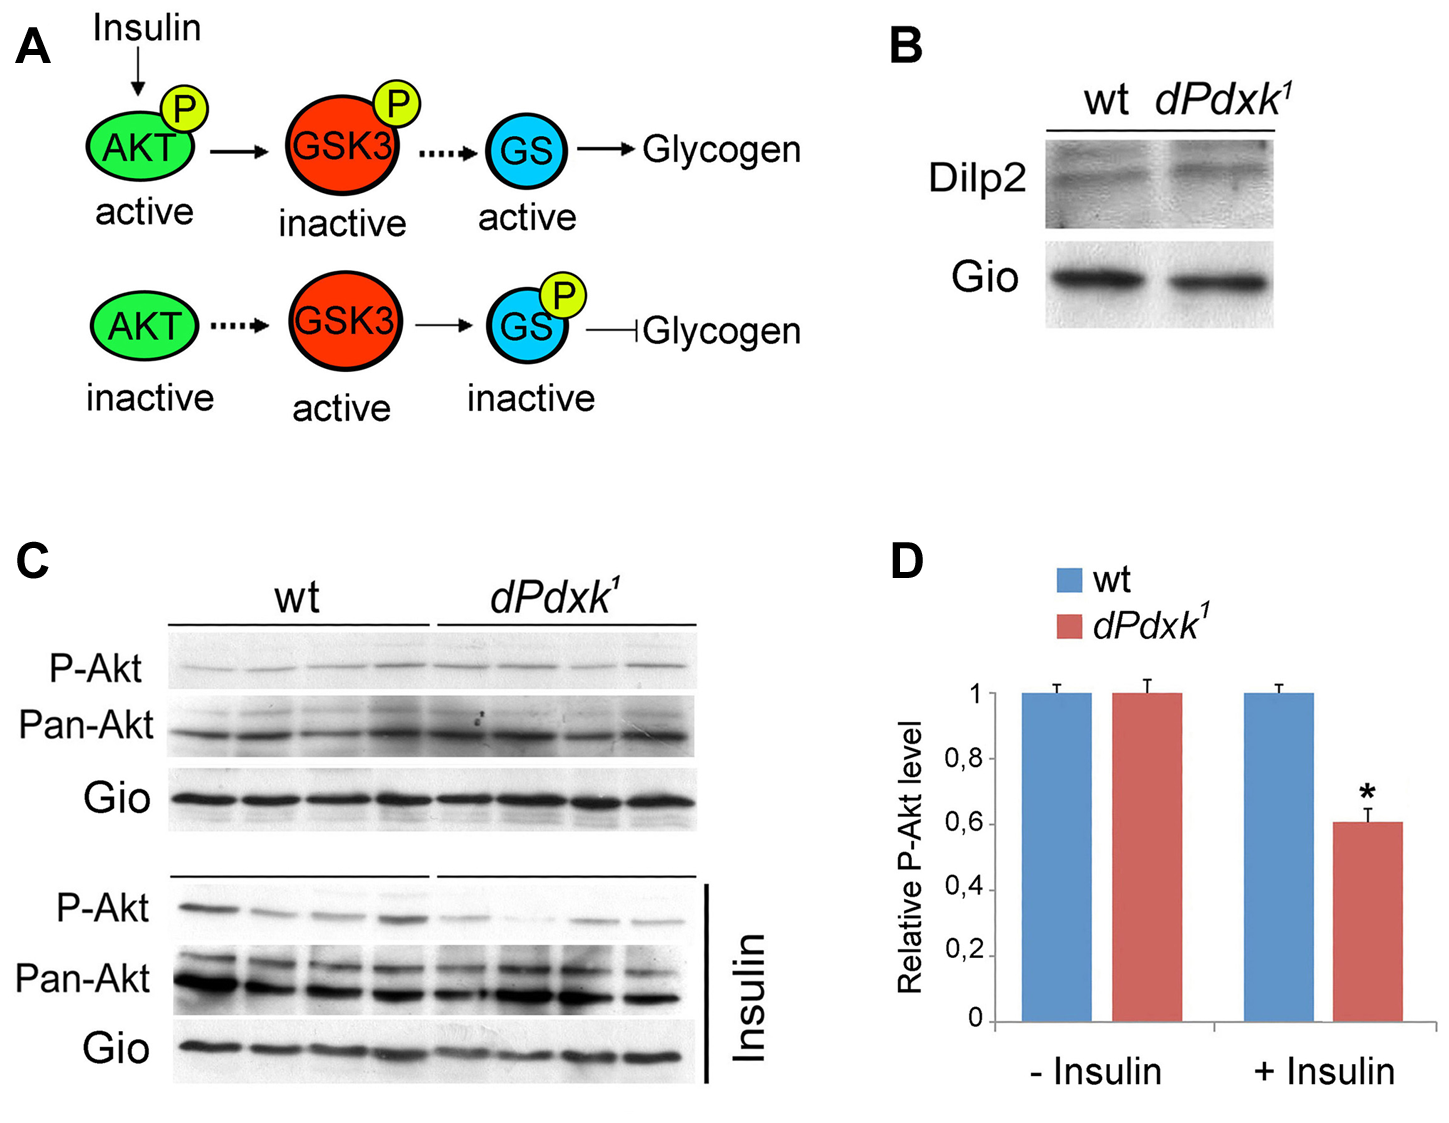 <i>dPdxk</i> mutants are defective in the insulin signaling pathway.